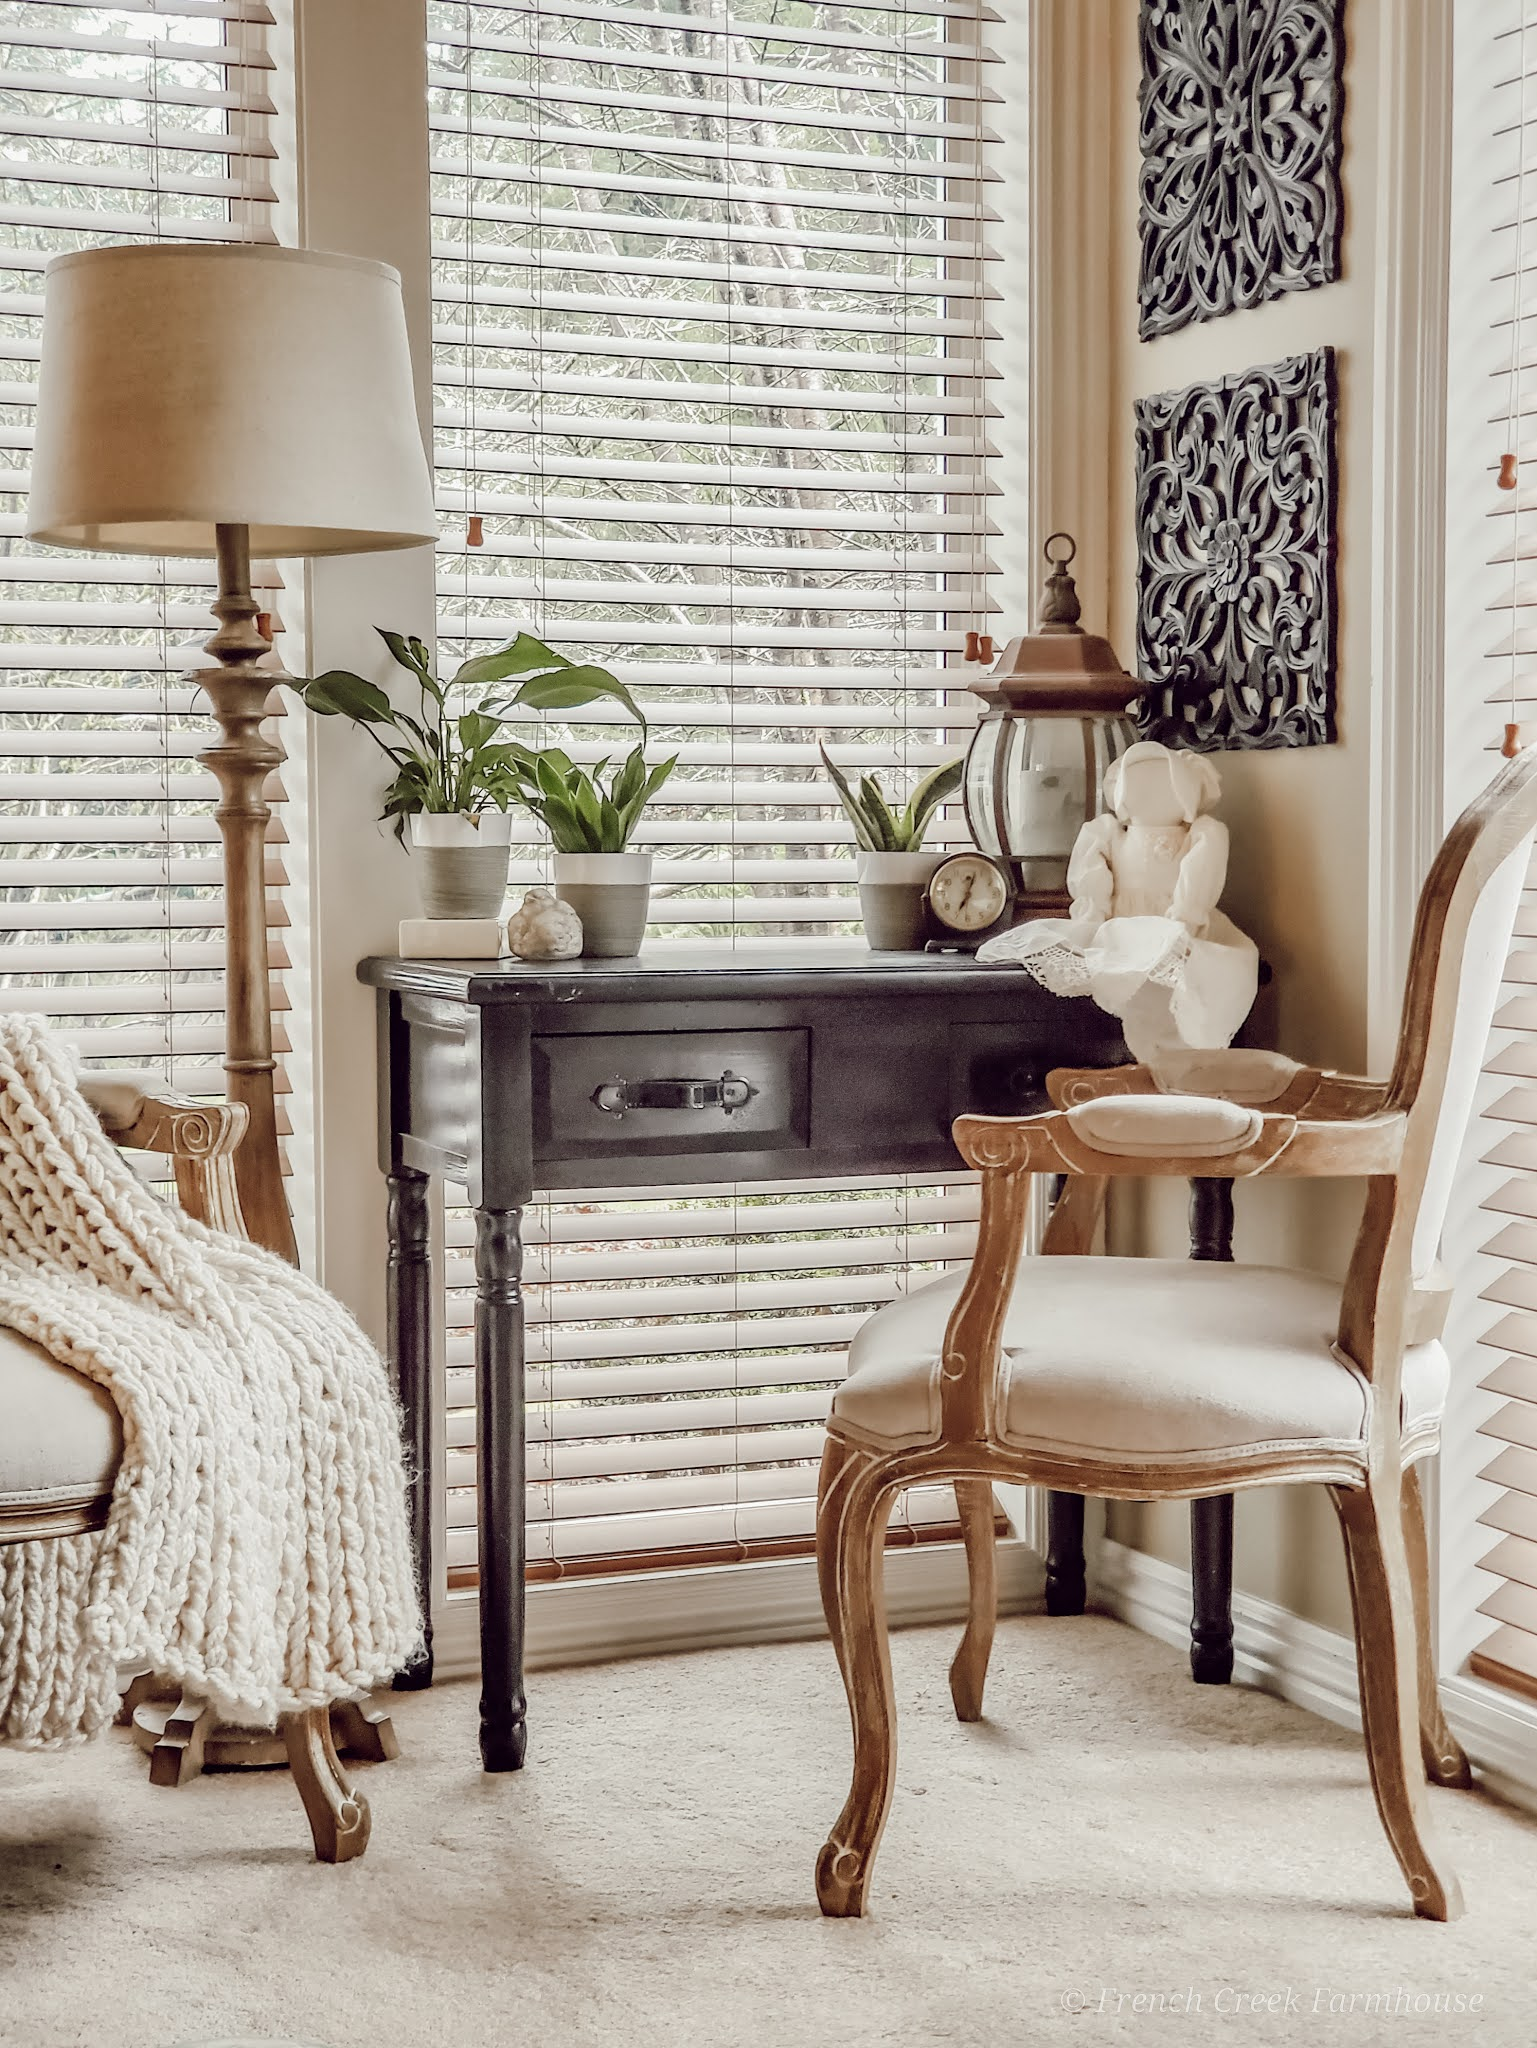 French country writing desk in front of window